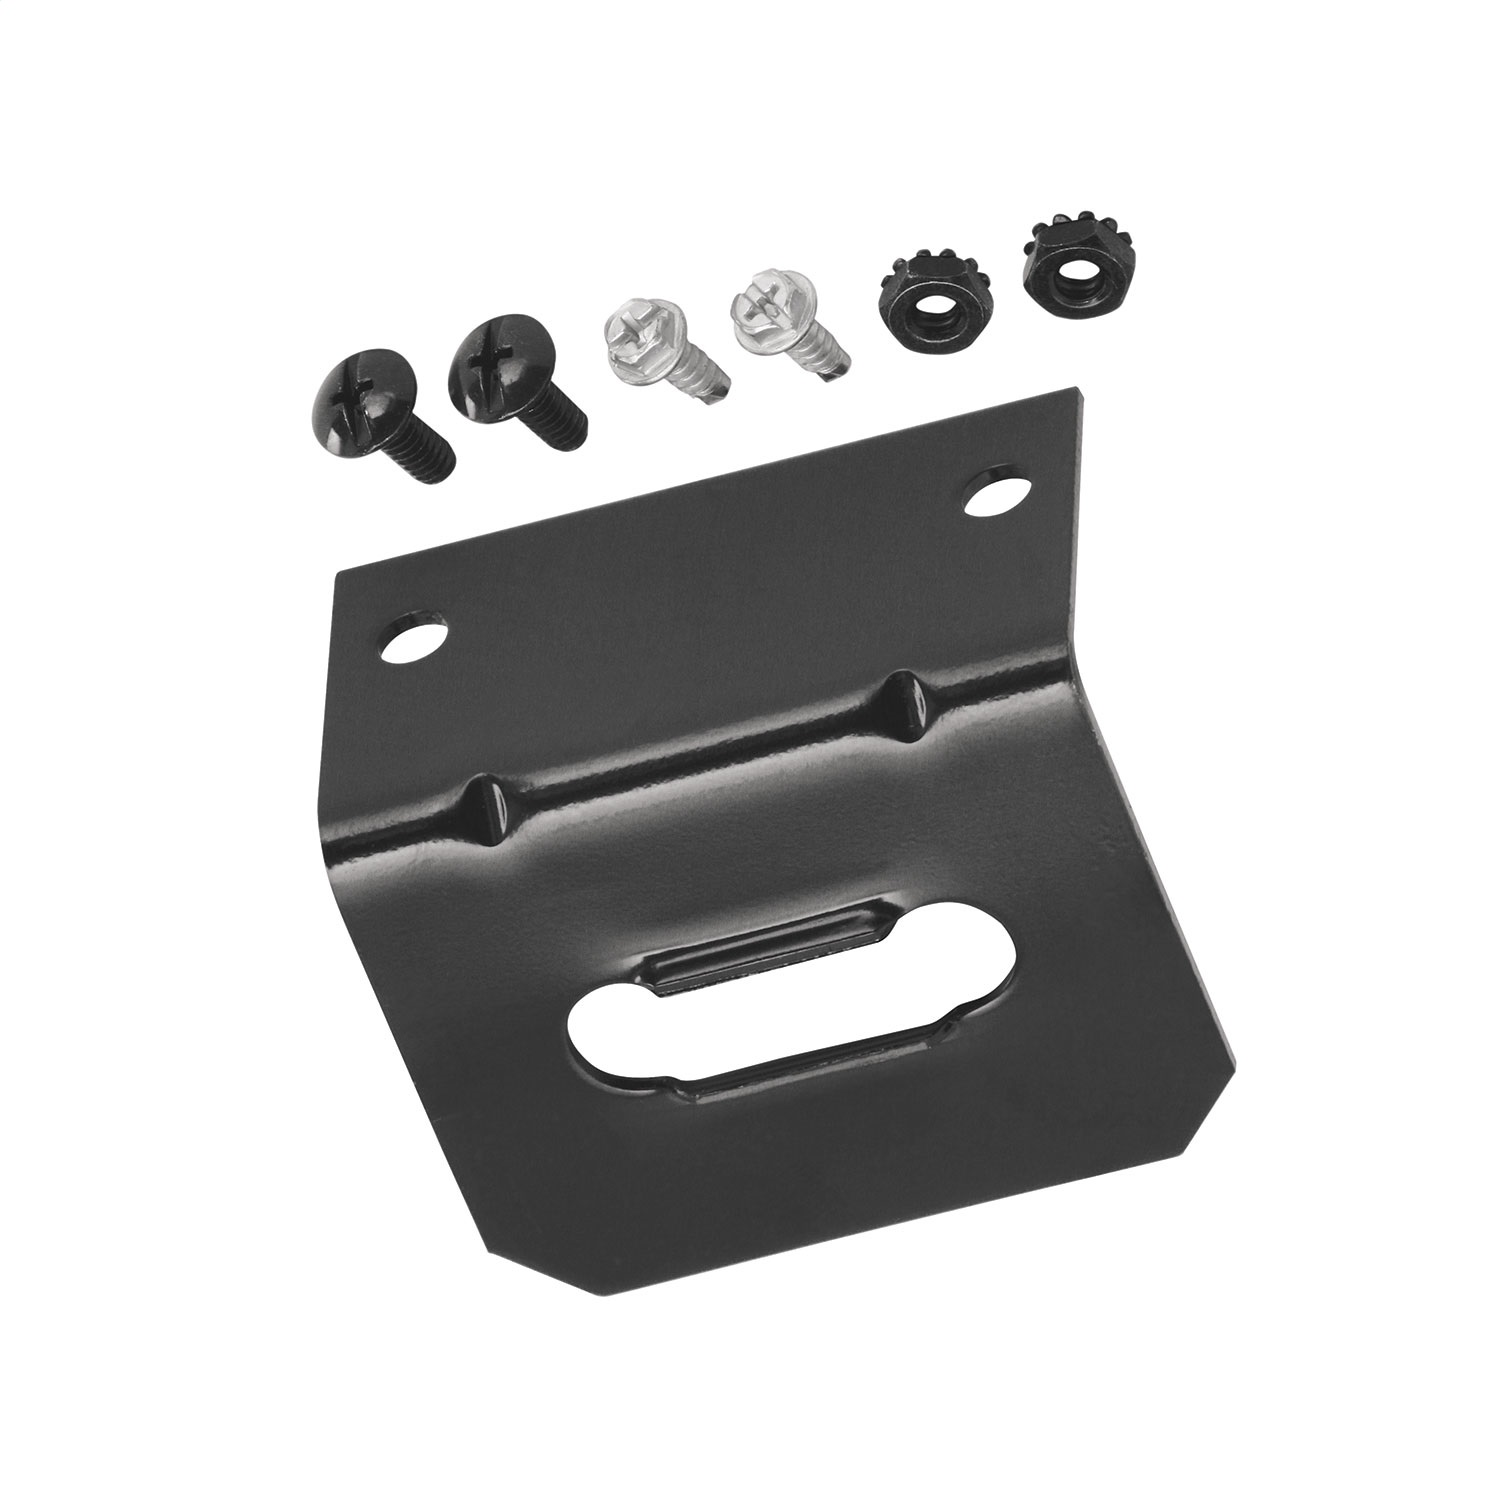 (Packaged) 4-Way Flat Mounting Bracket Replacement Auto Part, Easy to Install